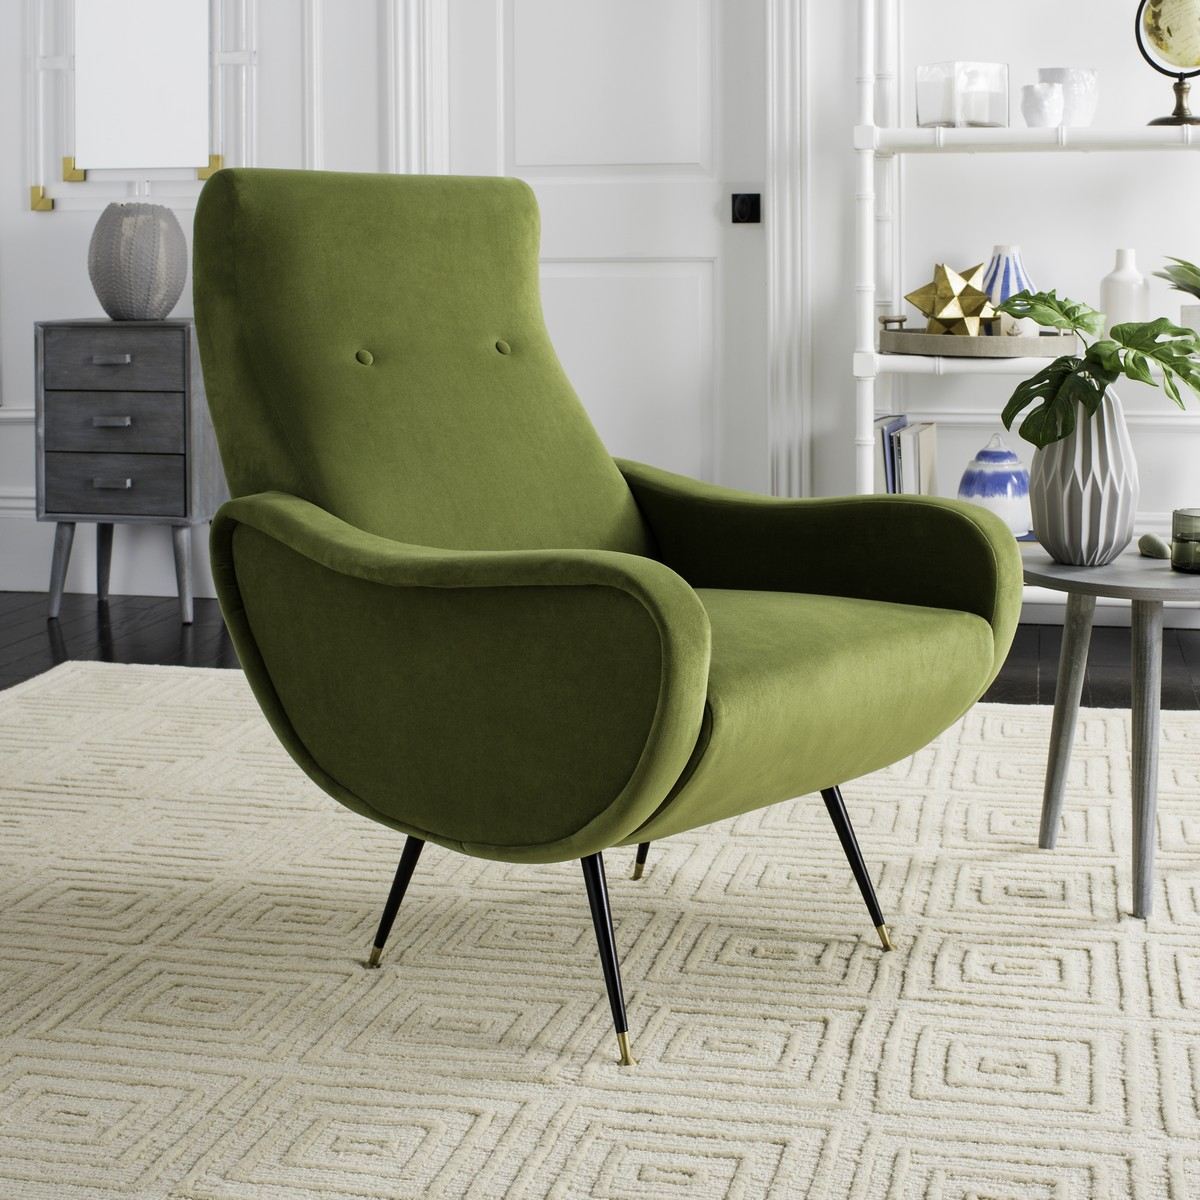 ACCENT CHAIRS. Color: Hunter Green. Save